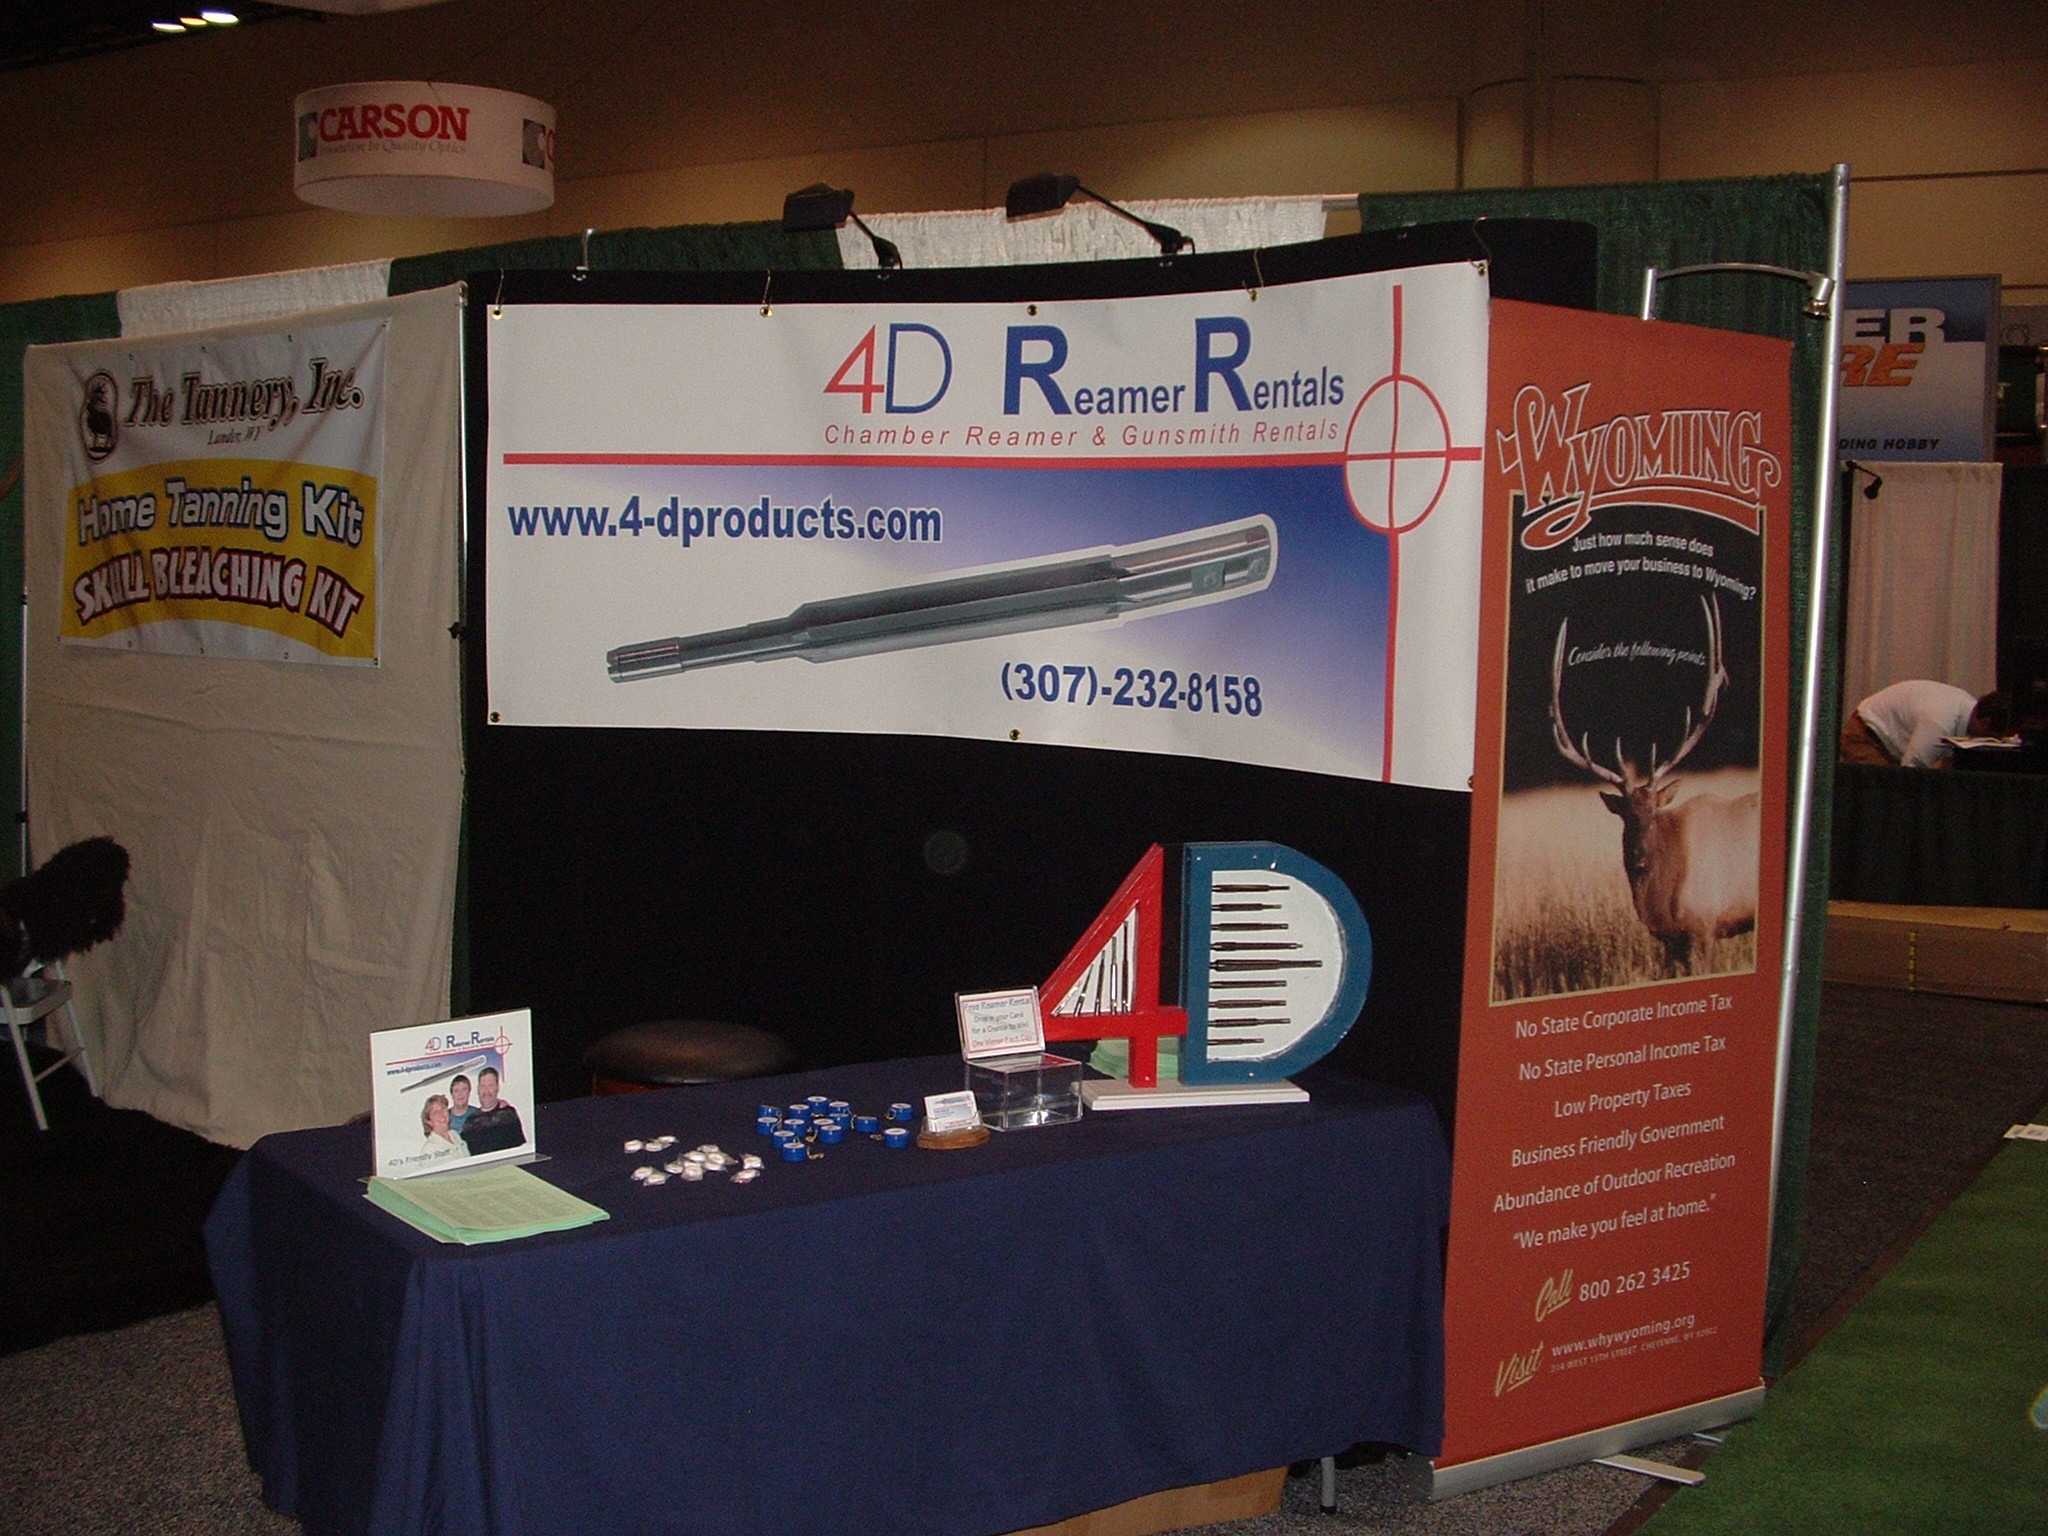 4D Reamer Rental Show Show booth 2009